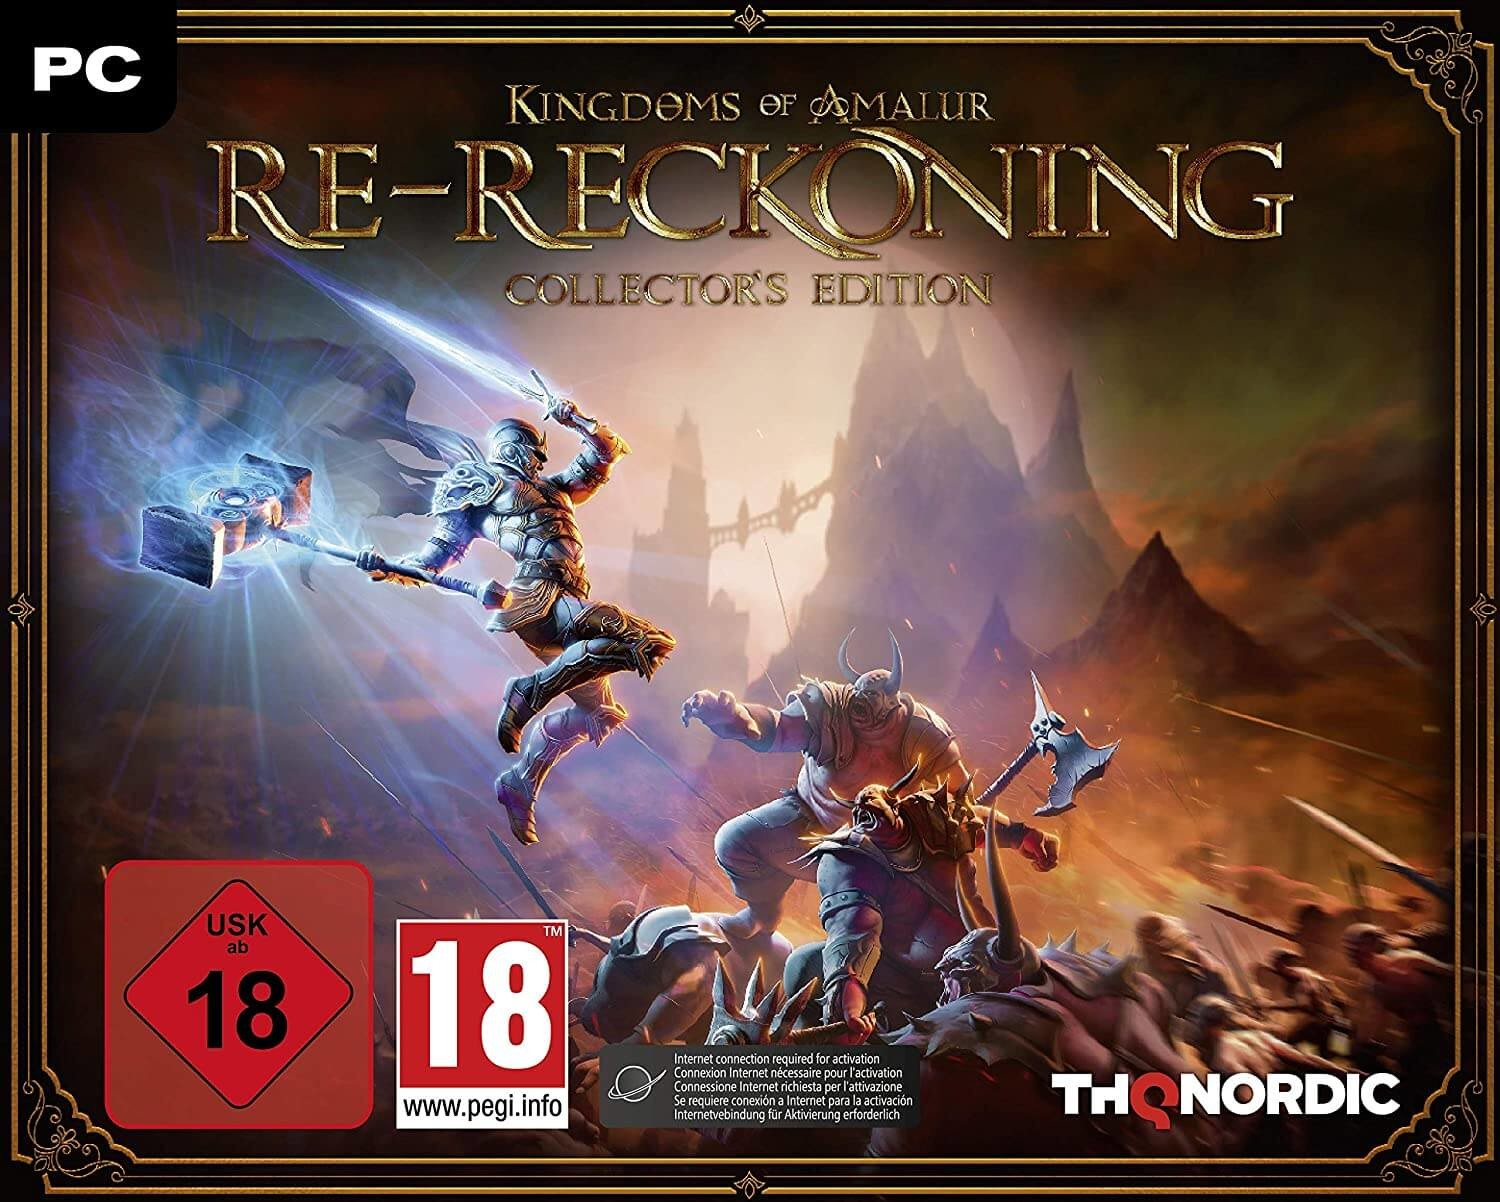 Kingdoms of Amalur Re-Reckoning Collector's Edition (GRA PC)